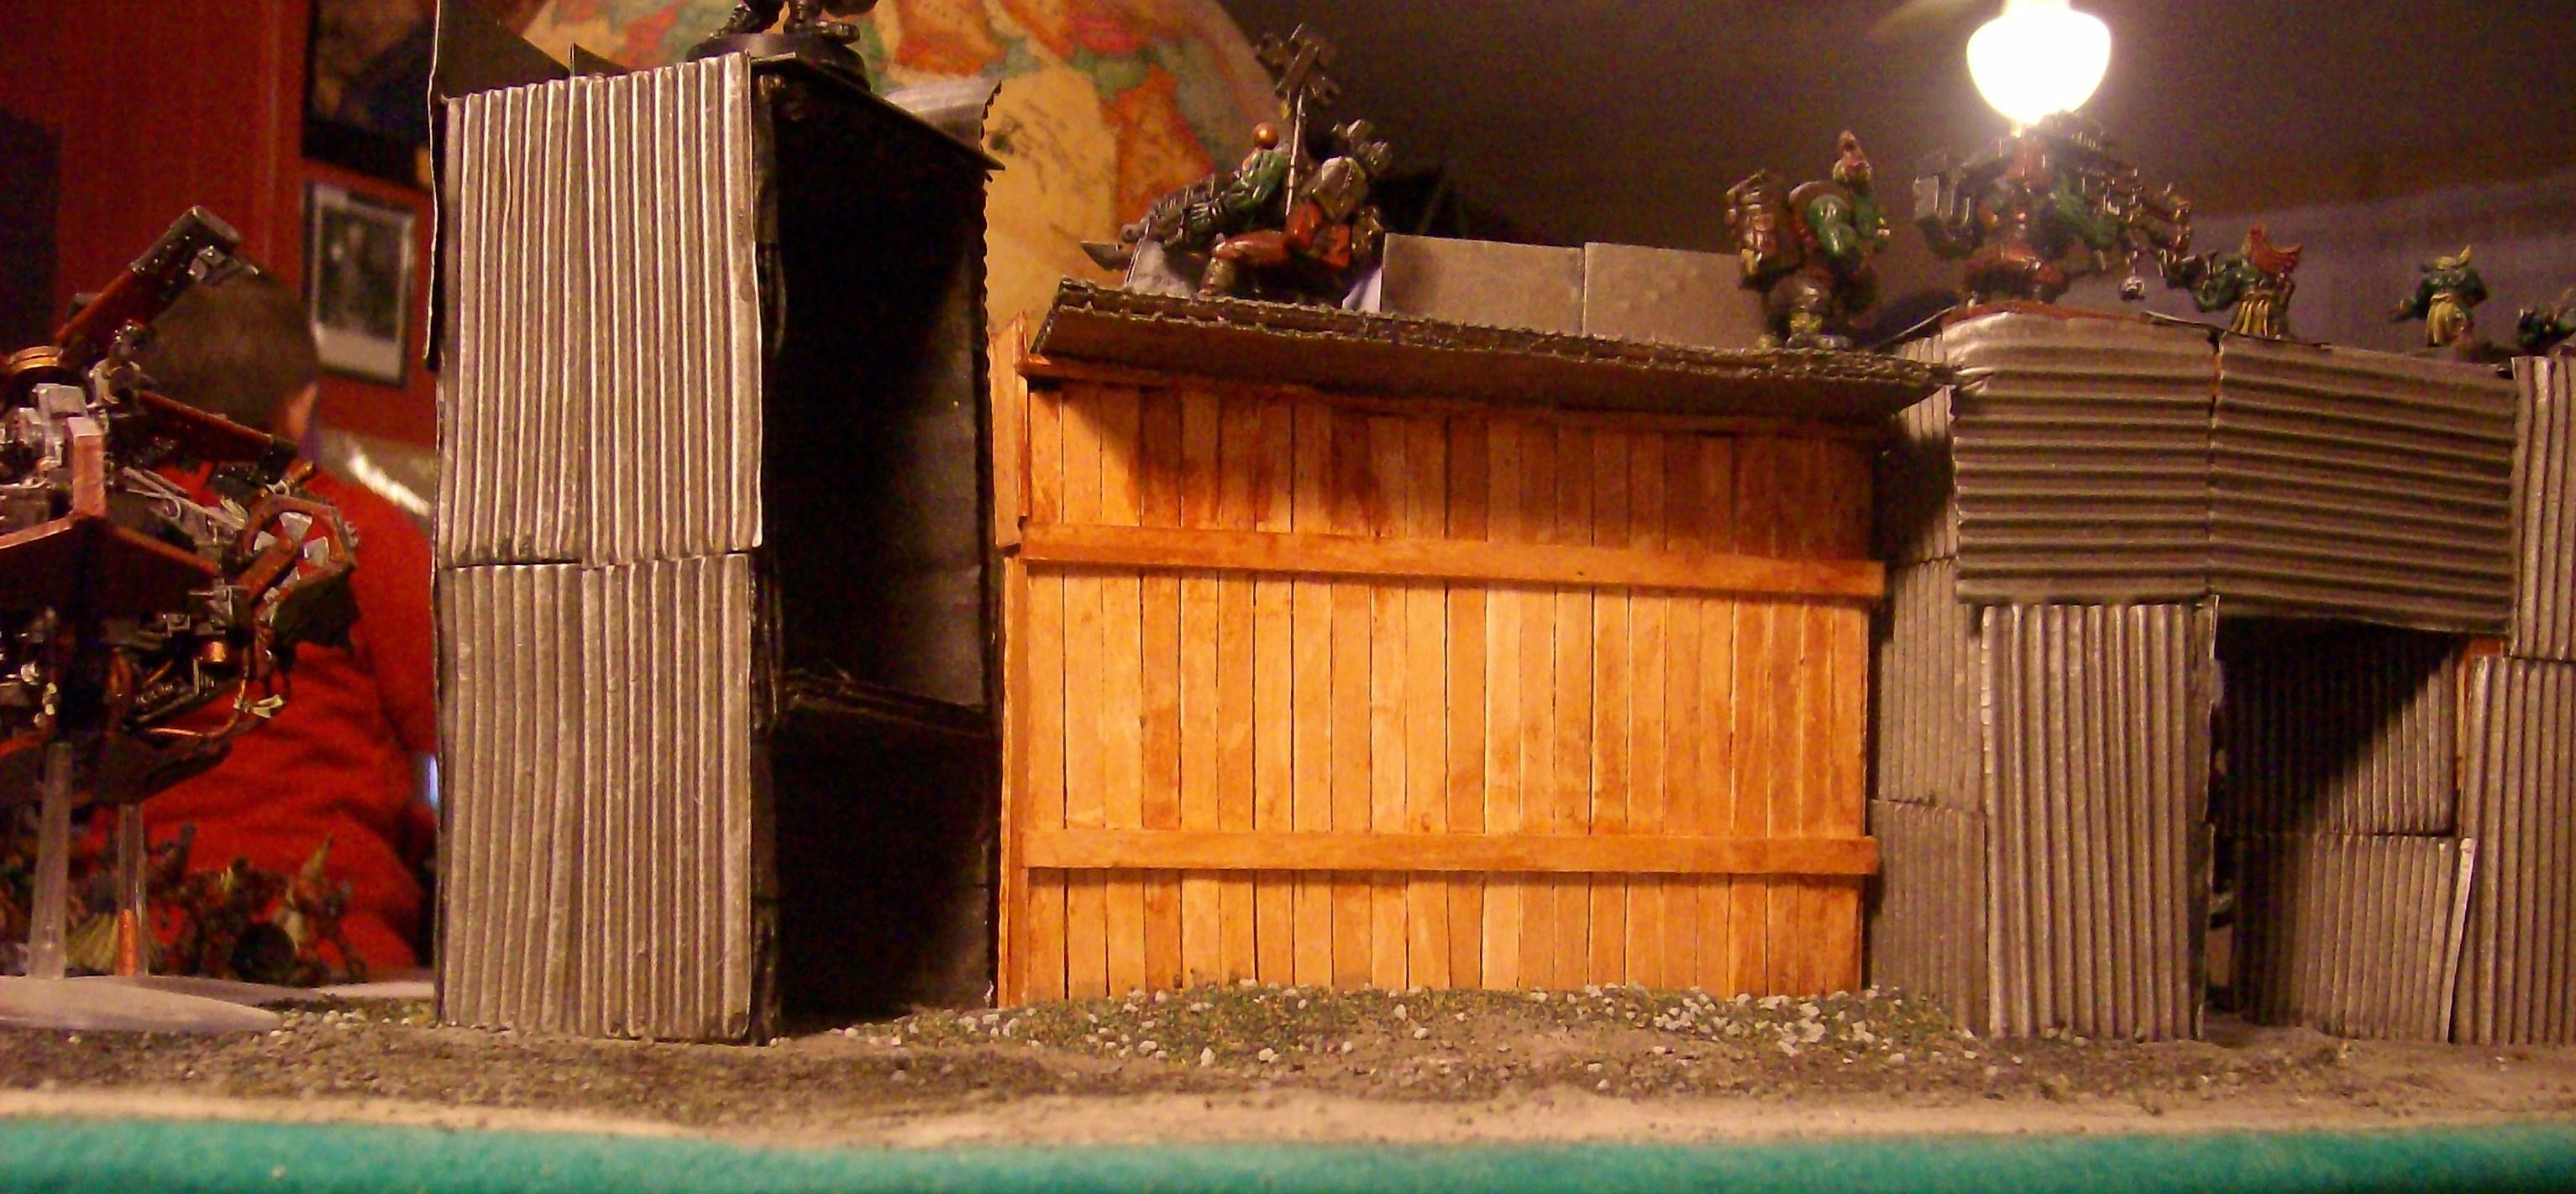 28mm Figures, Acrylic Paints, Homemade Fort., Military Minitures, Ork Fort, Wargame Minitures, Warhammer Figures